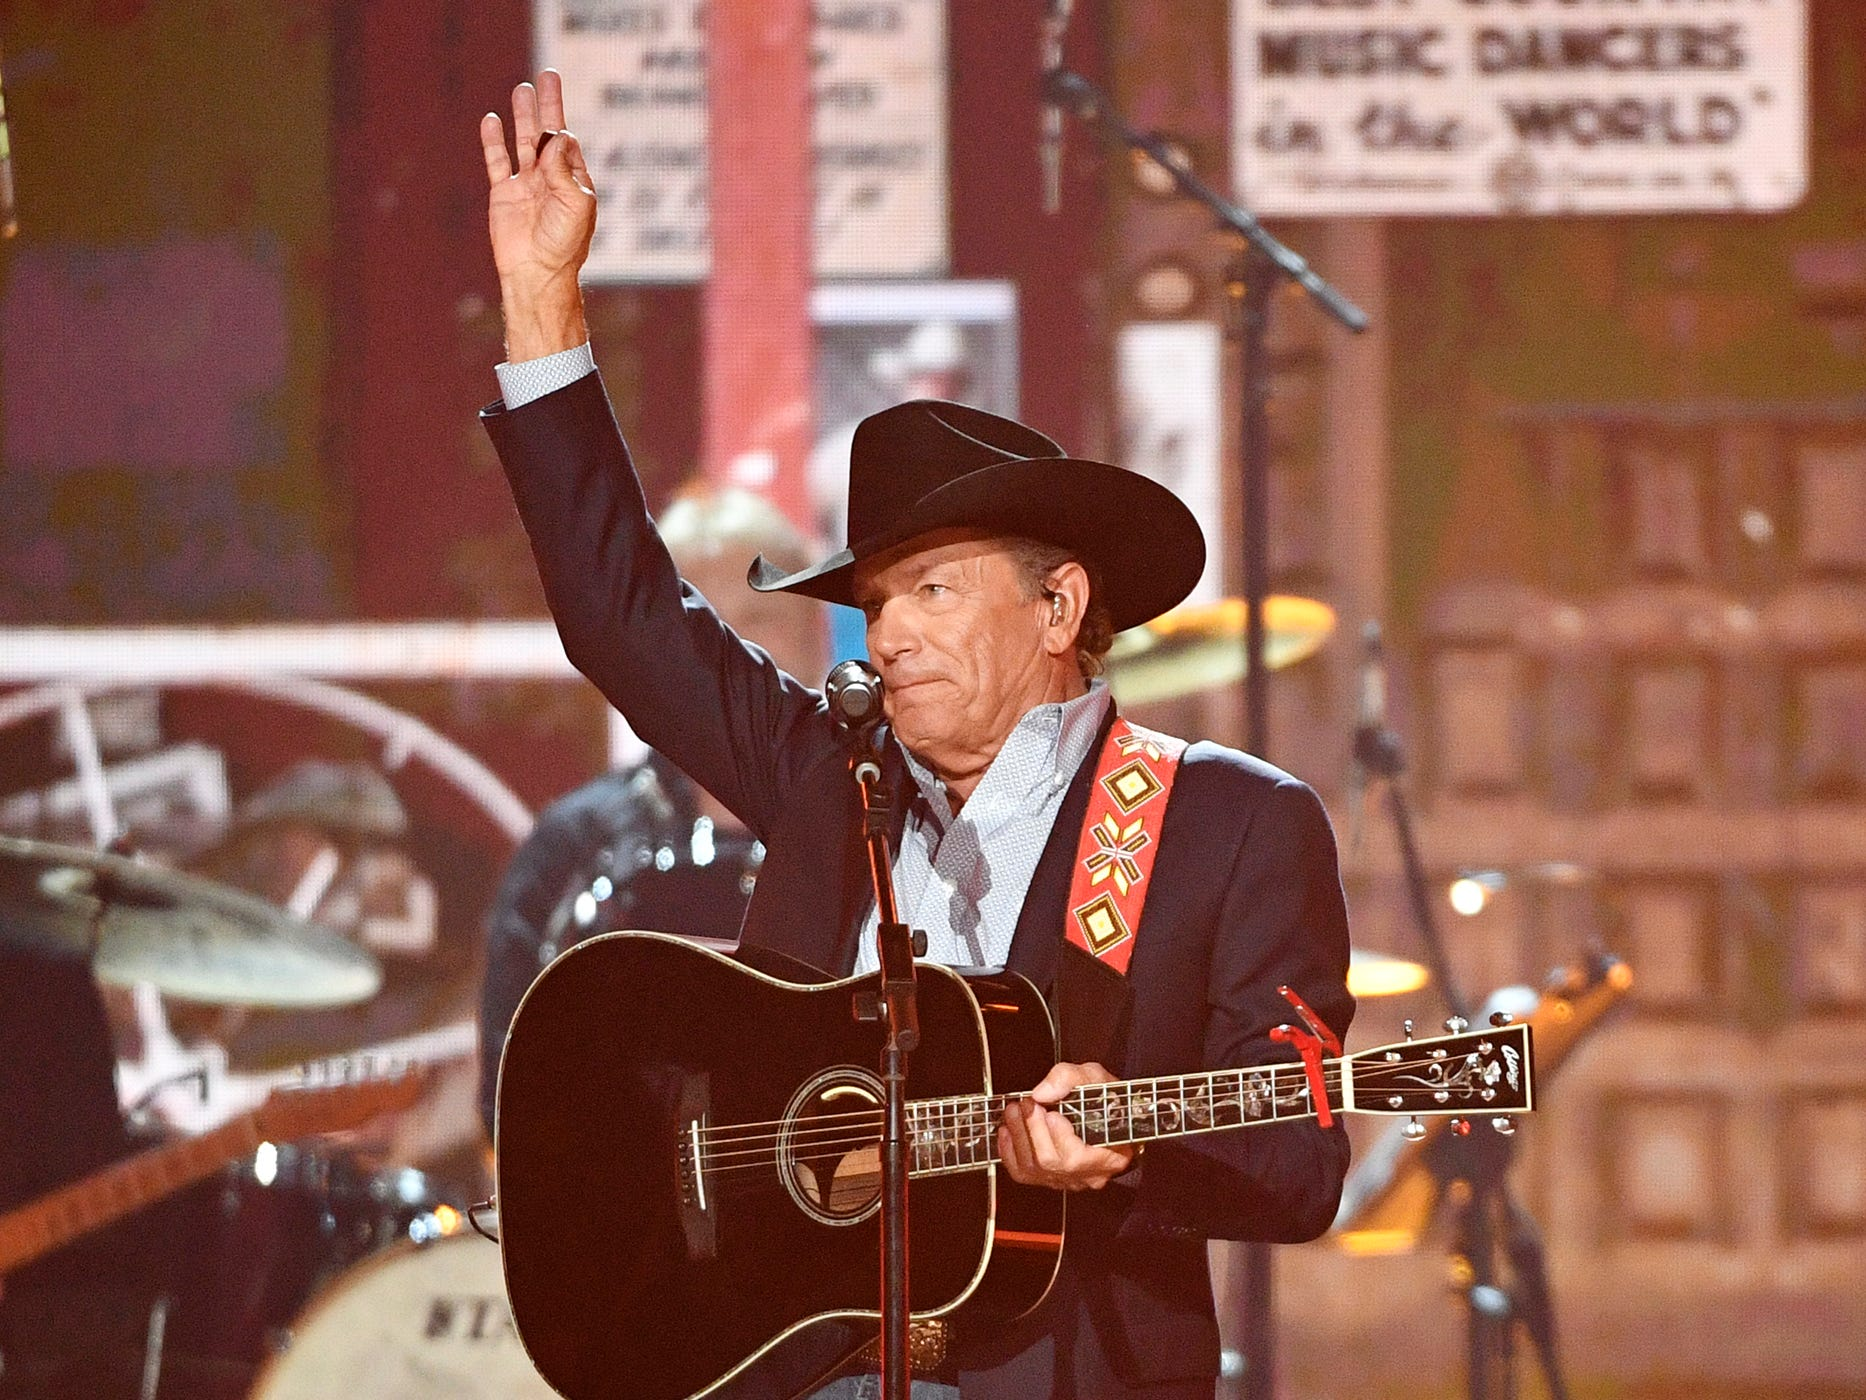 George Strait performs during the 54TH Academy of Country Music Awards Sunday, April 7, 2019, in Las Vegas, Nev.